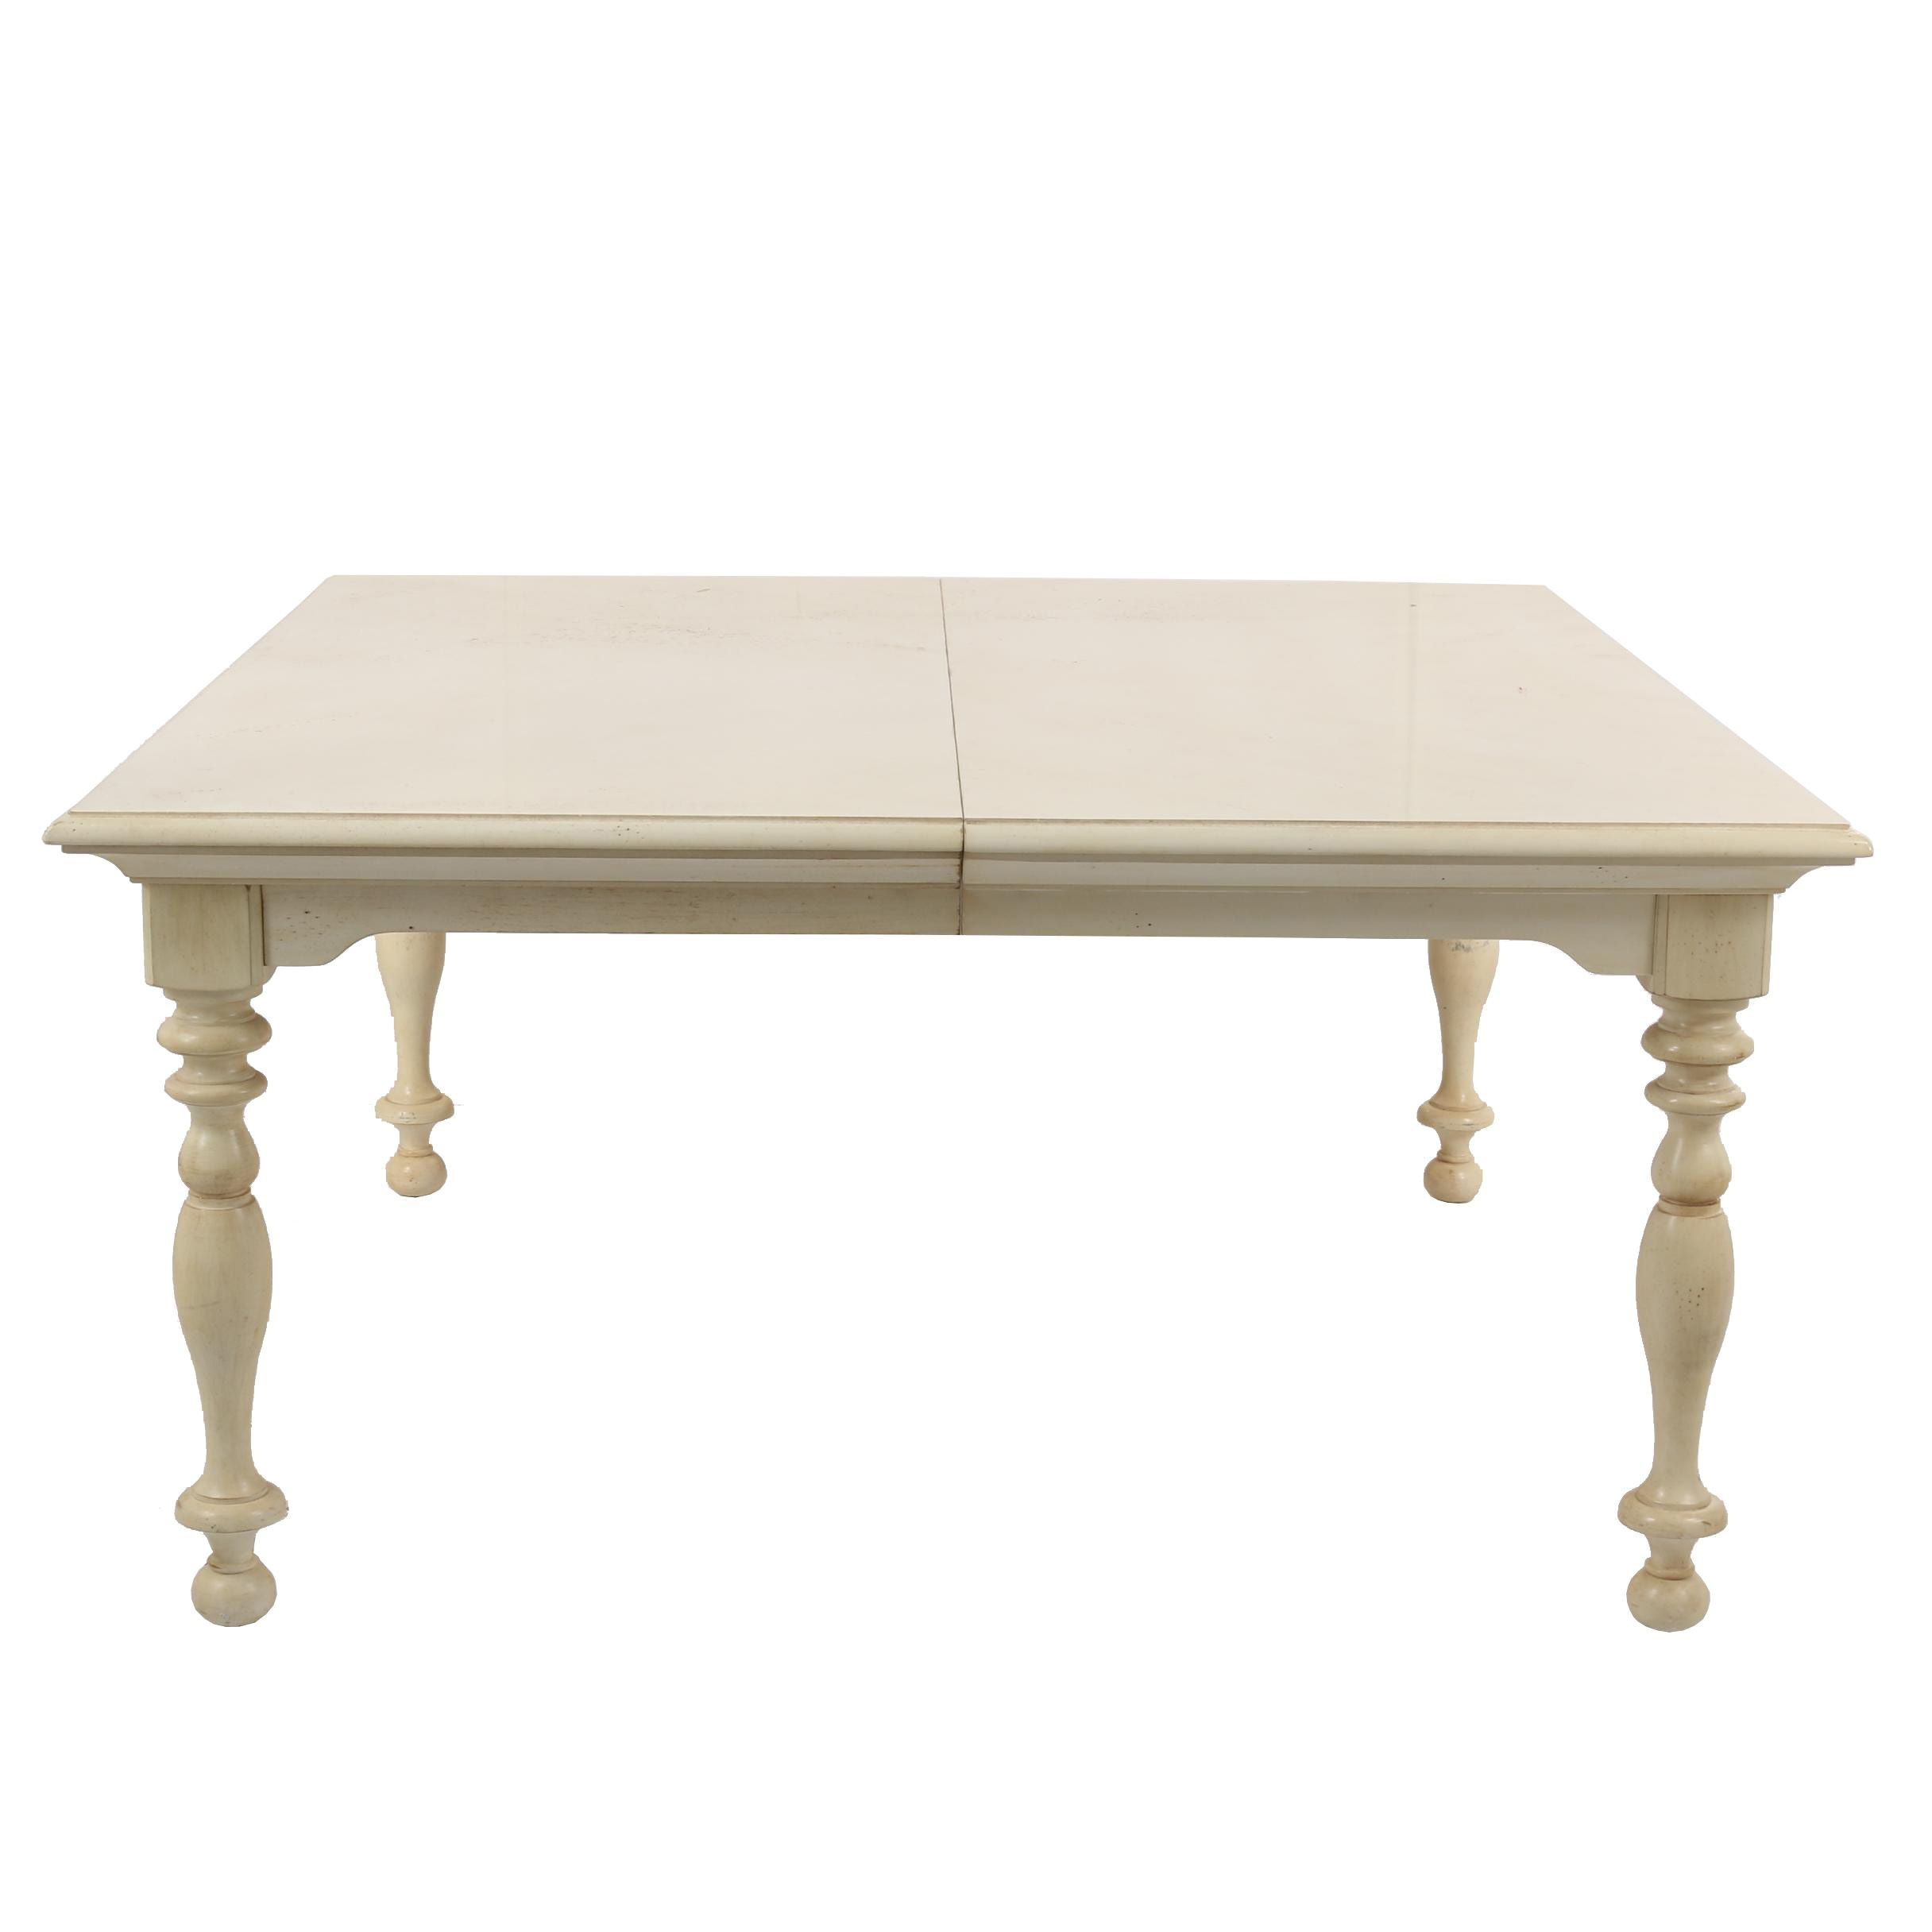 Painted Wooden Dining Table by Hickory White, 21st Century